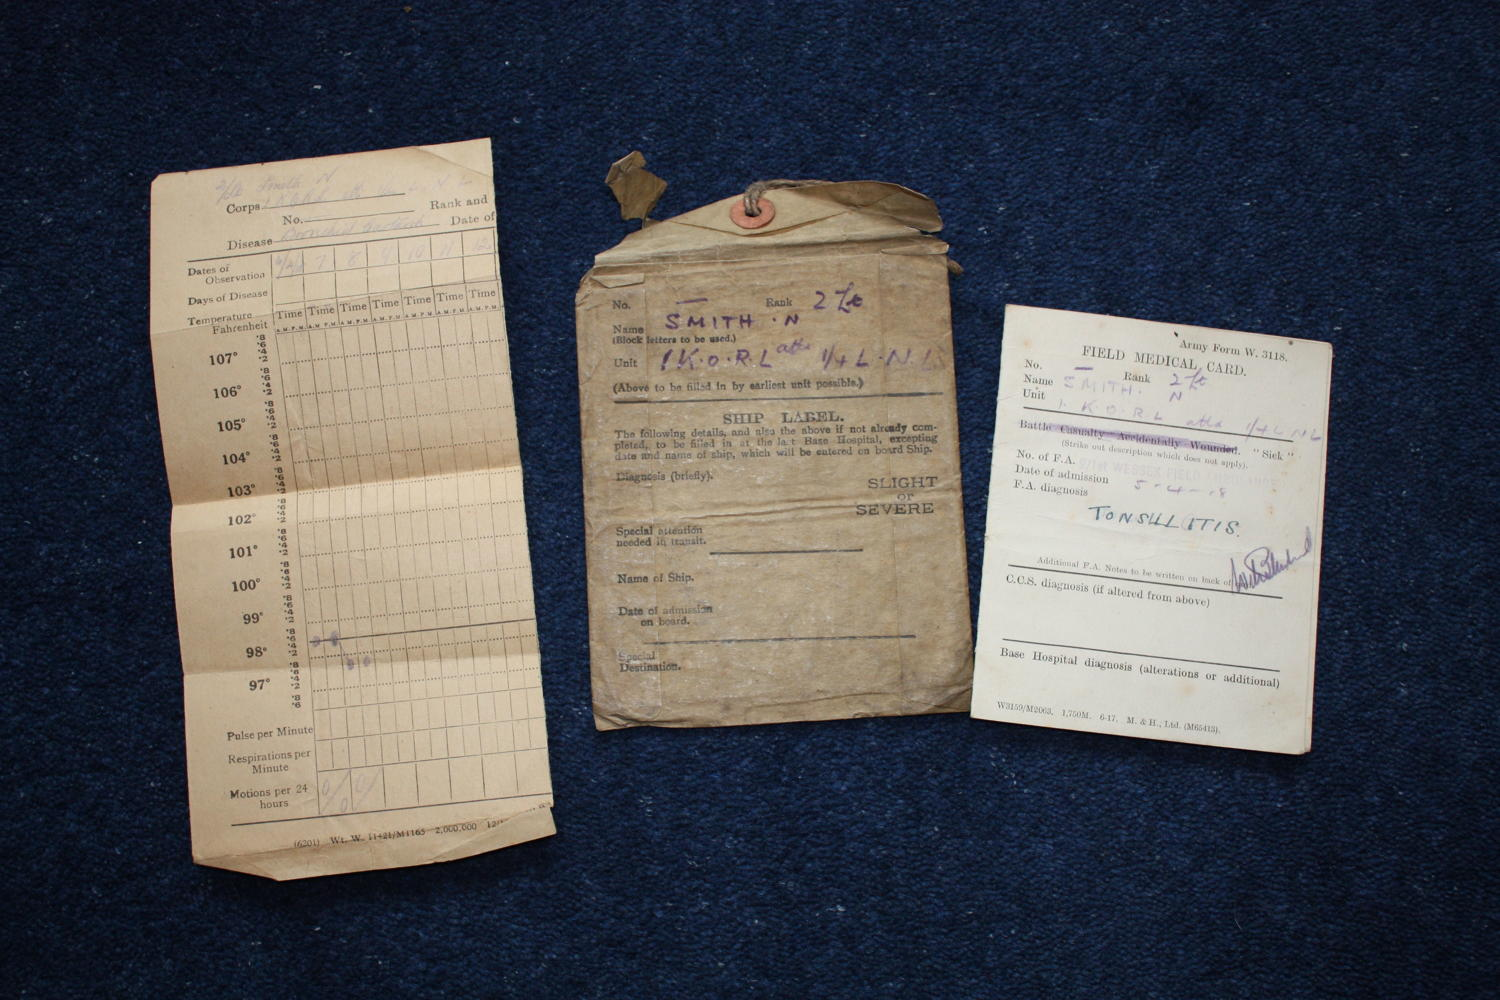 RARE WW1 BRITISH SOLDIERS MEDICAL CARD & SHIP LABEL